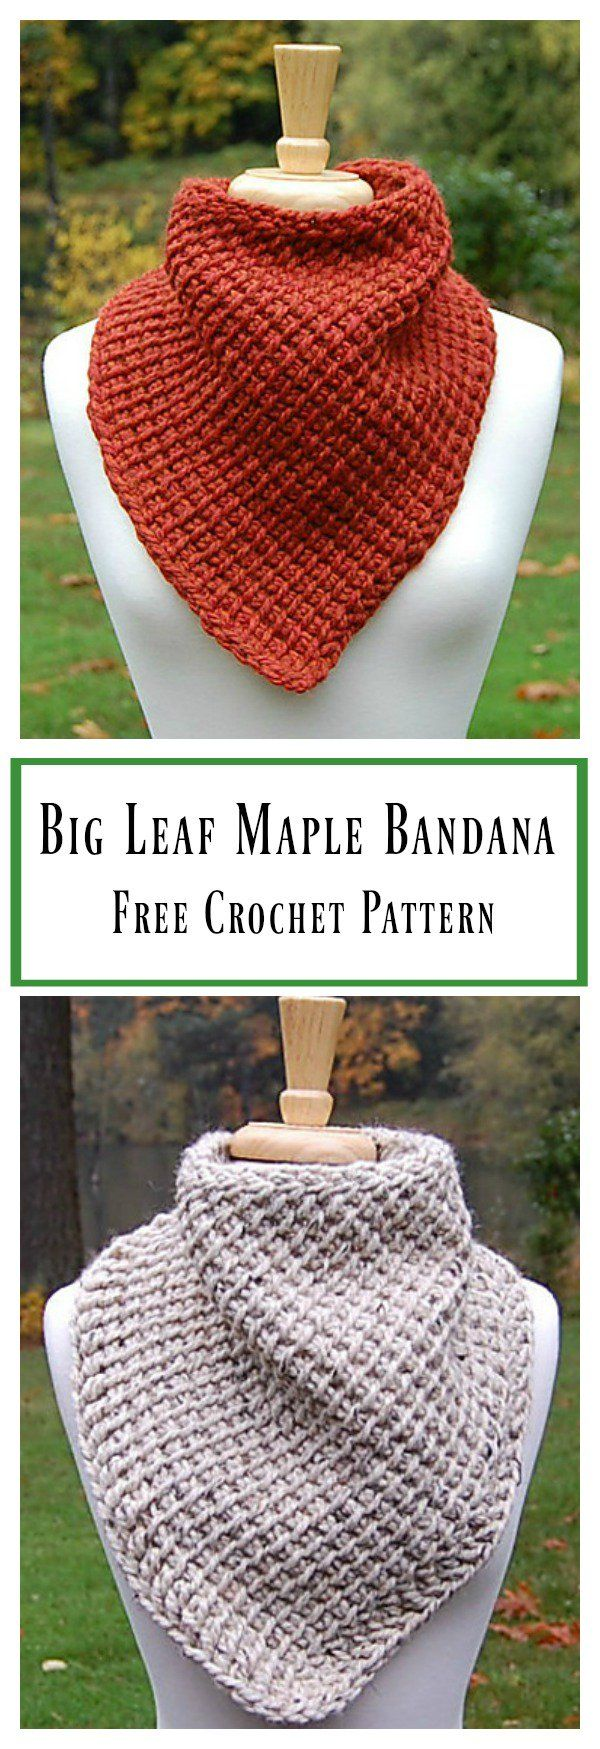 Big Leaf Maple Bandana Cowl Free Crochet Pattern | Pinterest ...